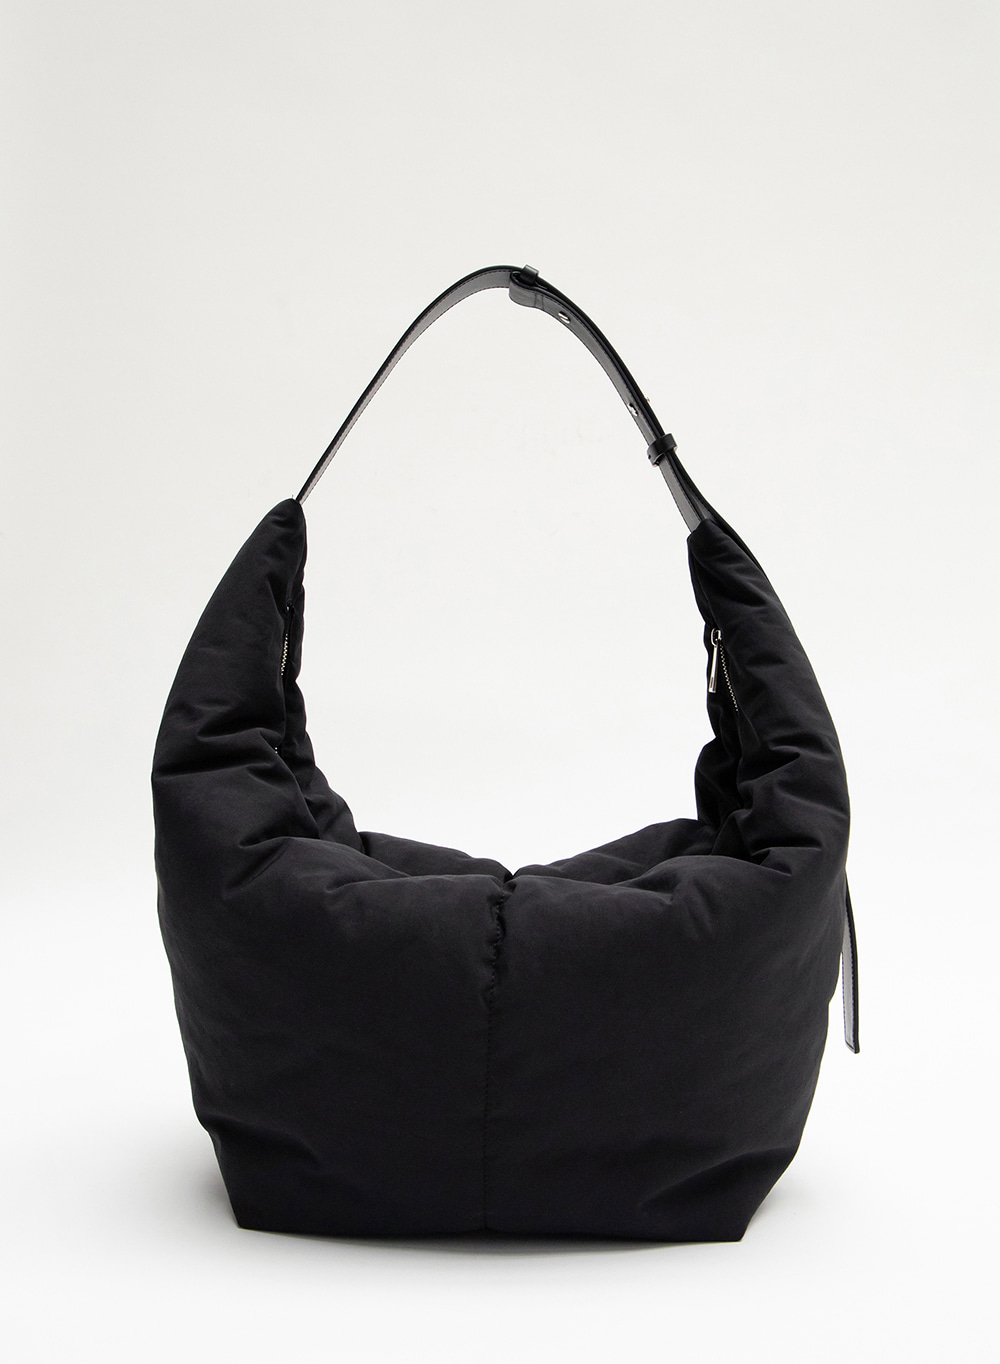 FW20 Padded Shoulder Bag Black